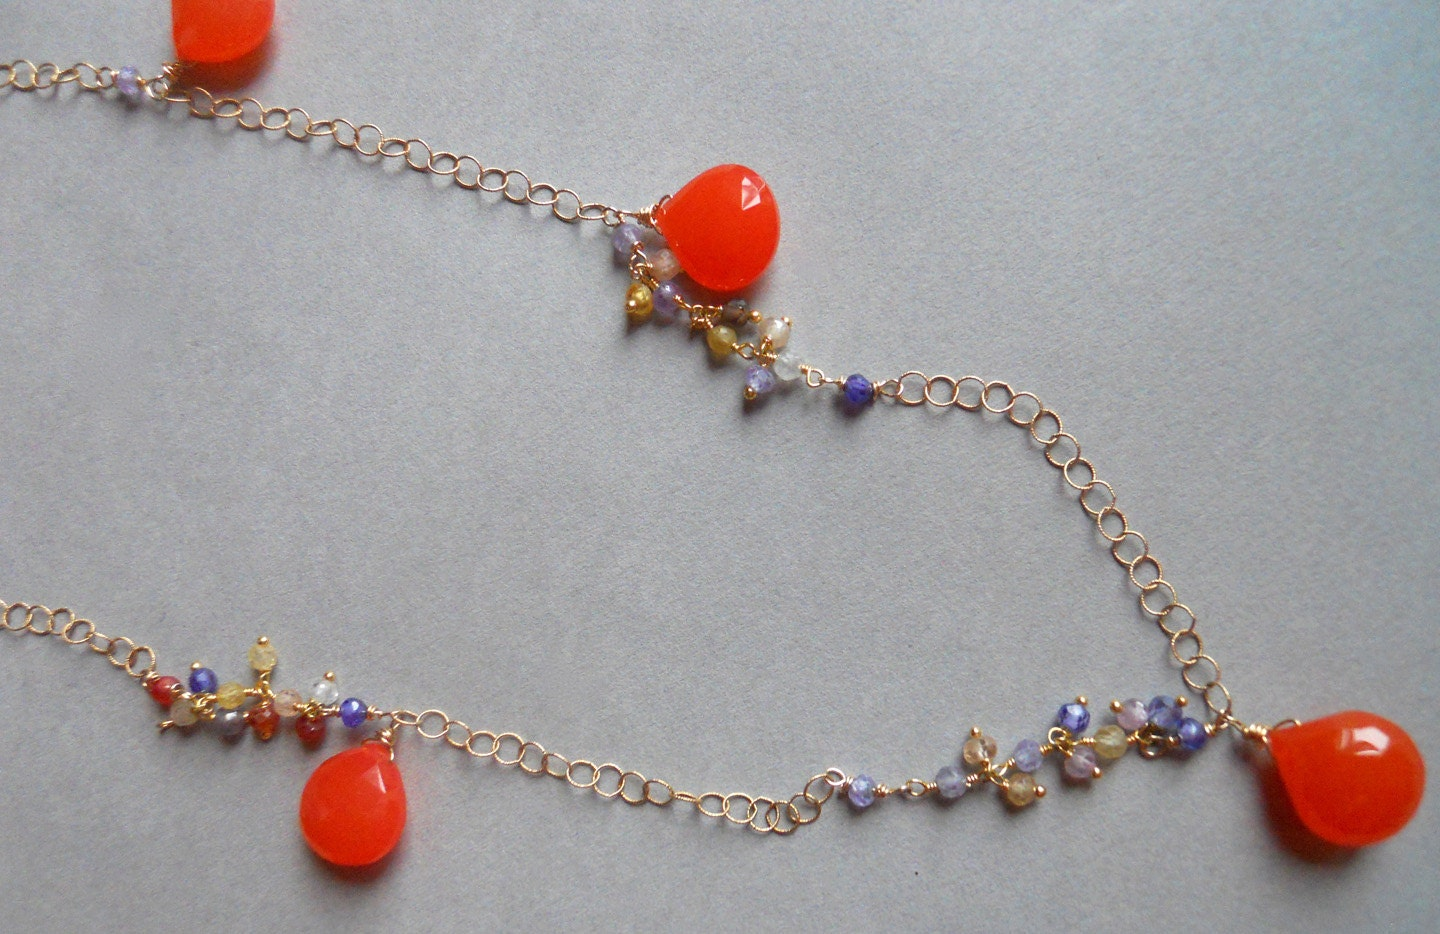 Sunshine nectarine chalcedony and gemstone long dangle necklace - $168.00 USD